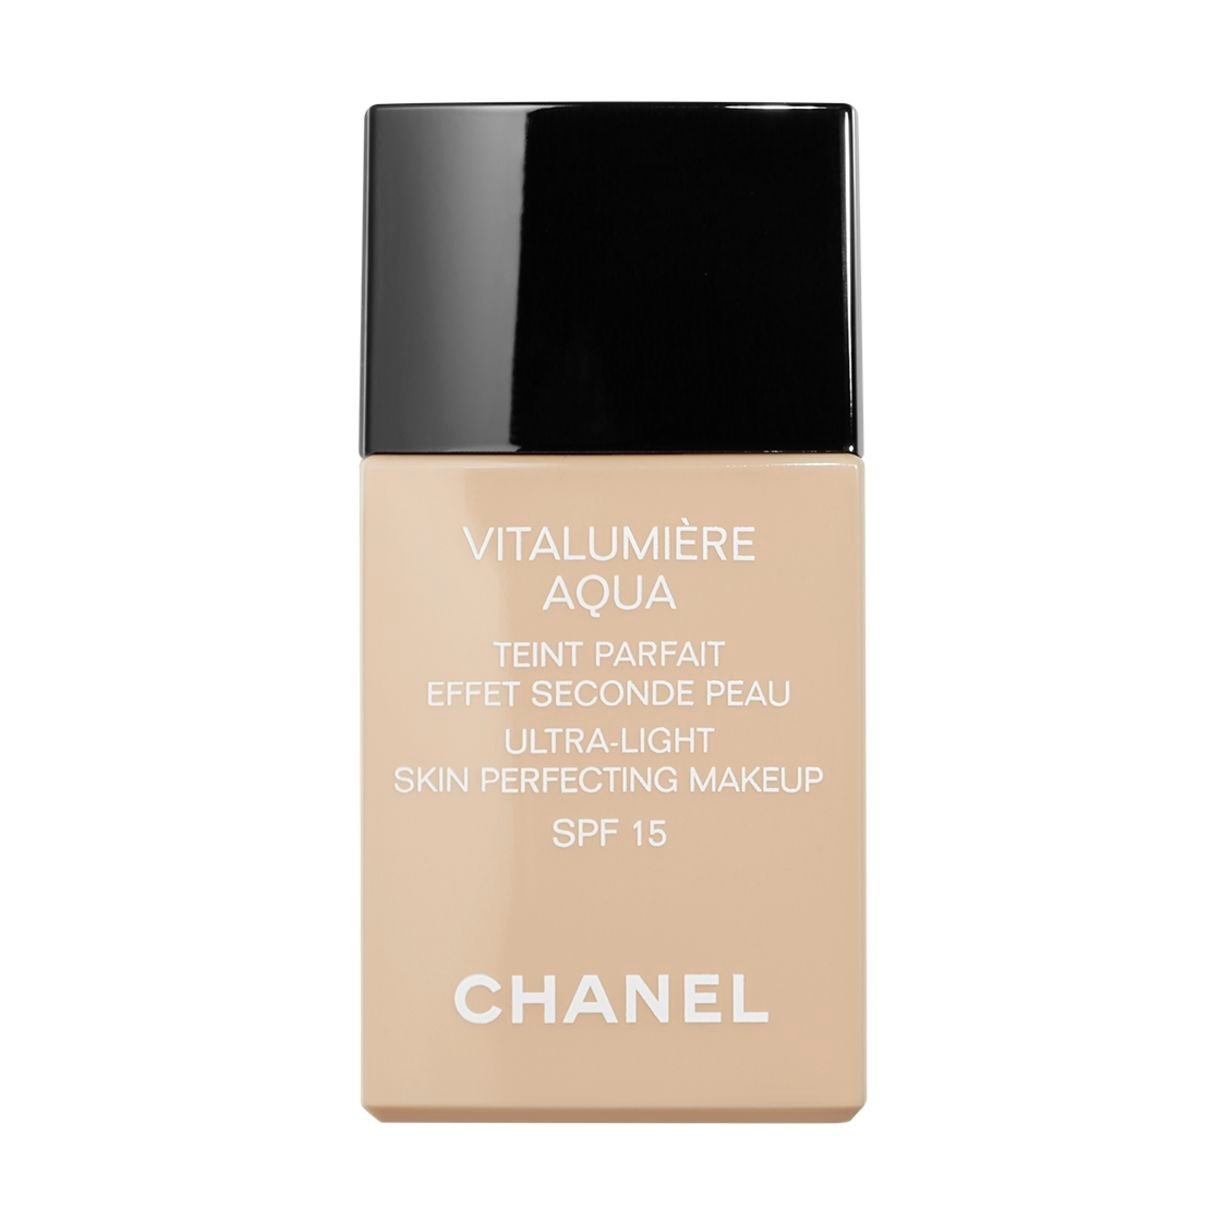 VITALUMIÈRE AQUA FLUID ULTRA-LIGHT SKIN PERFECTING MAKEUP SPF 15